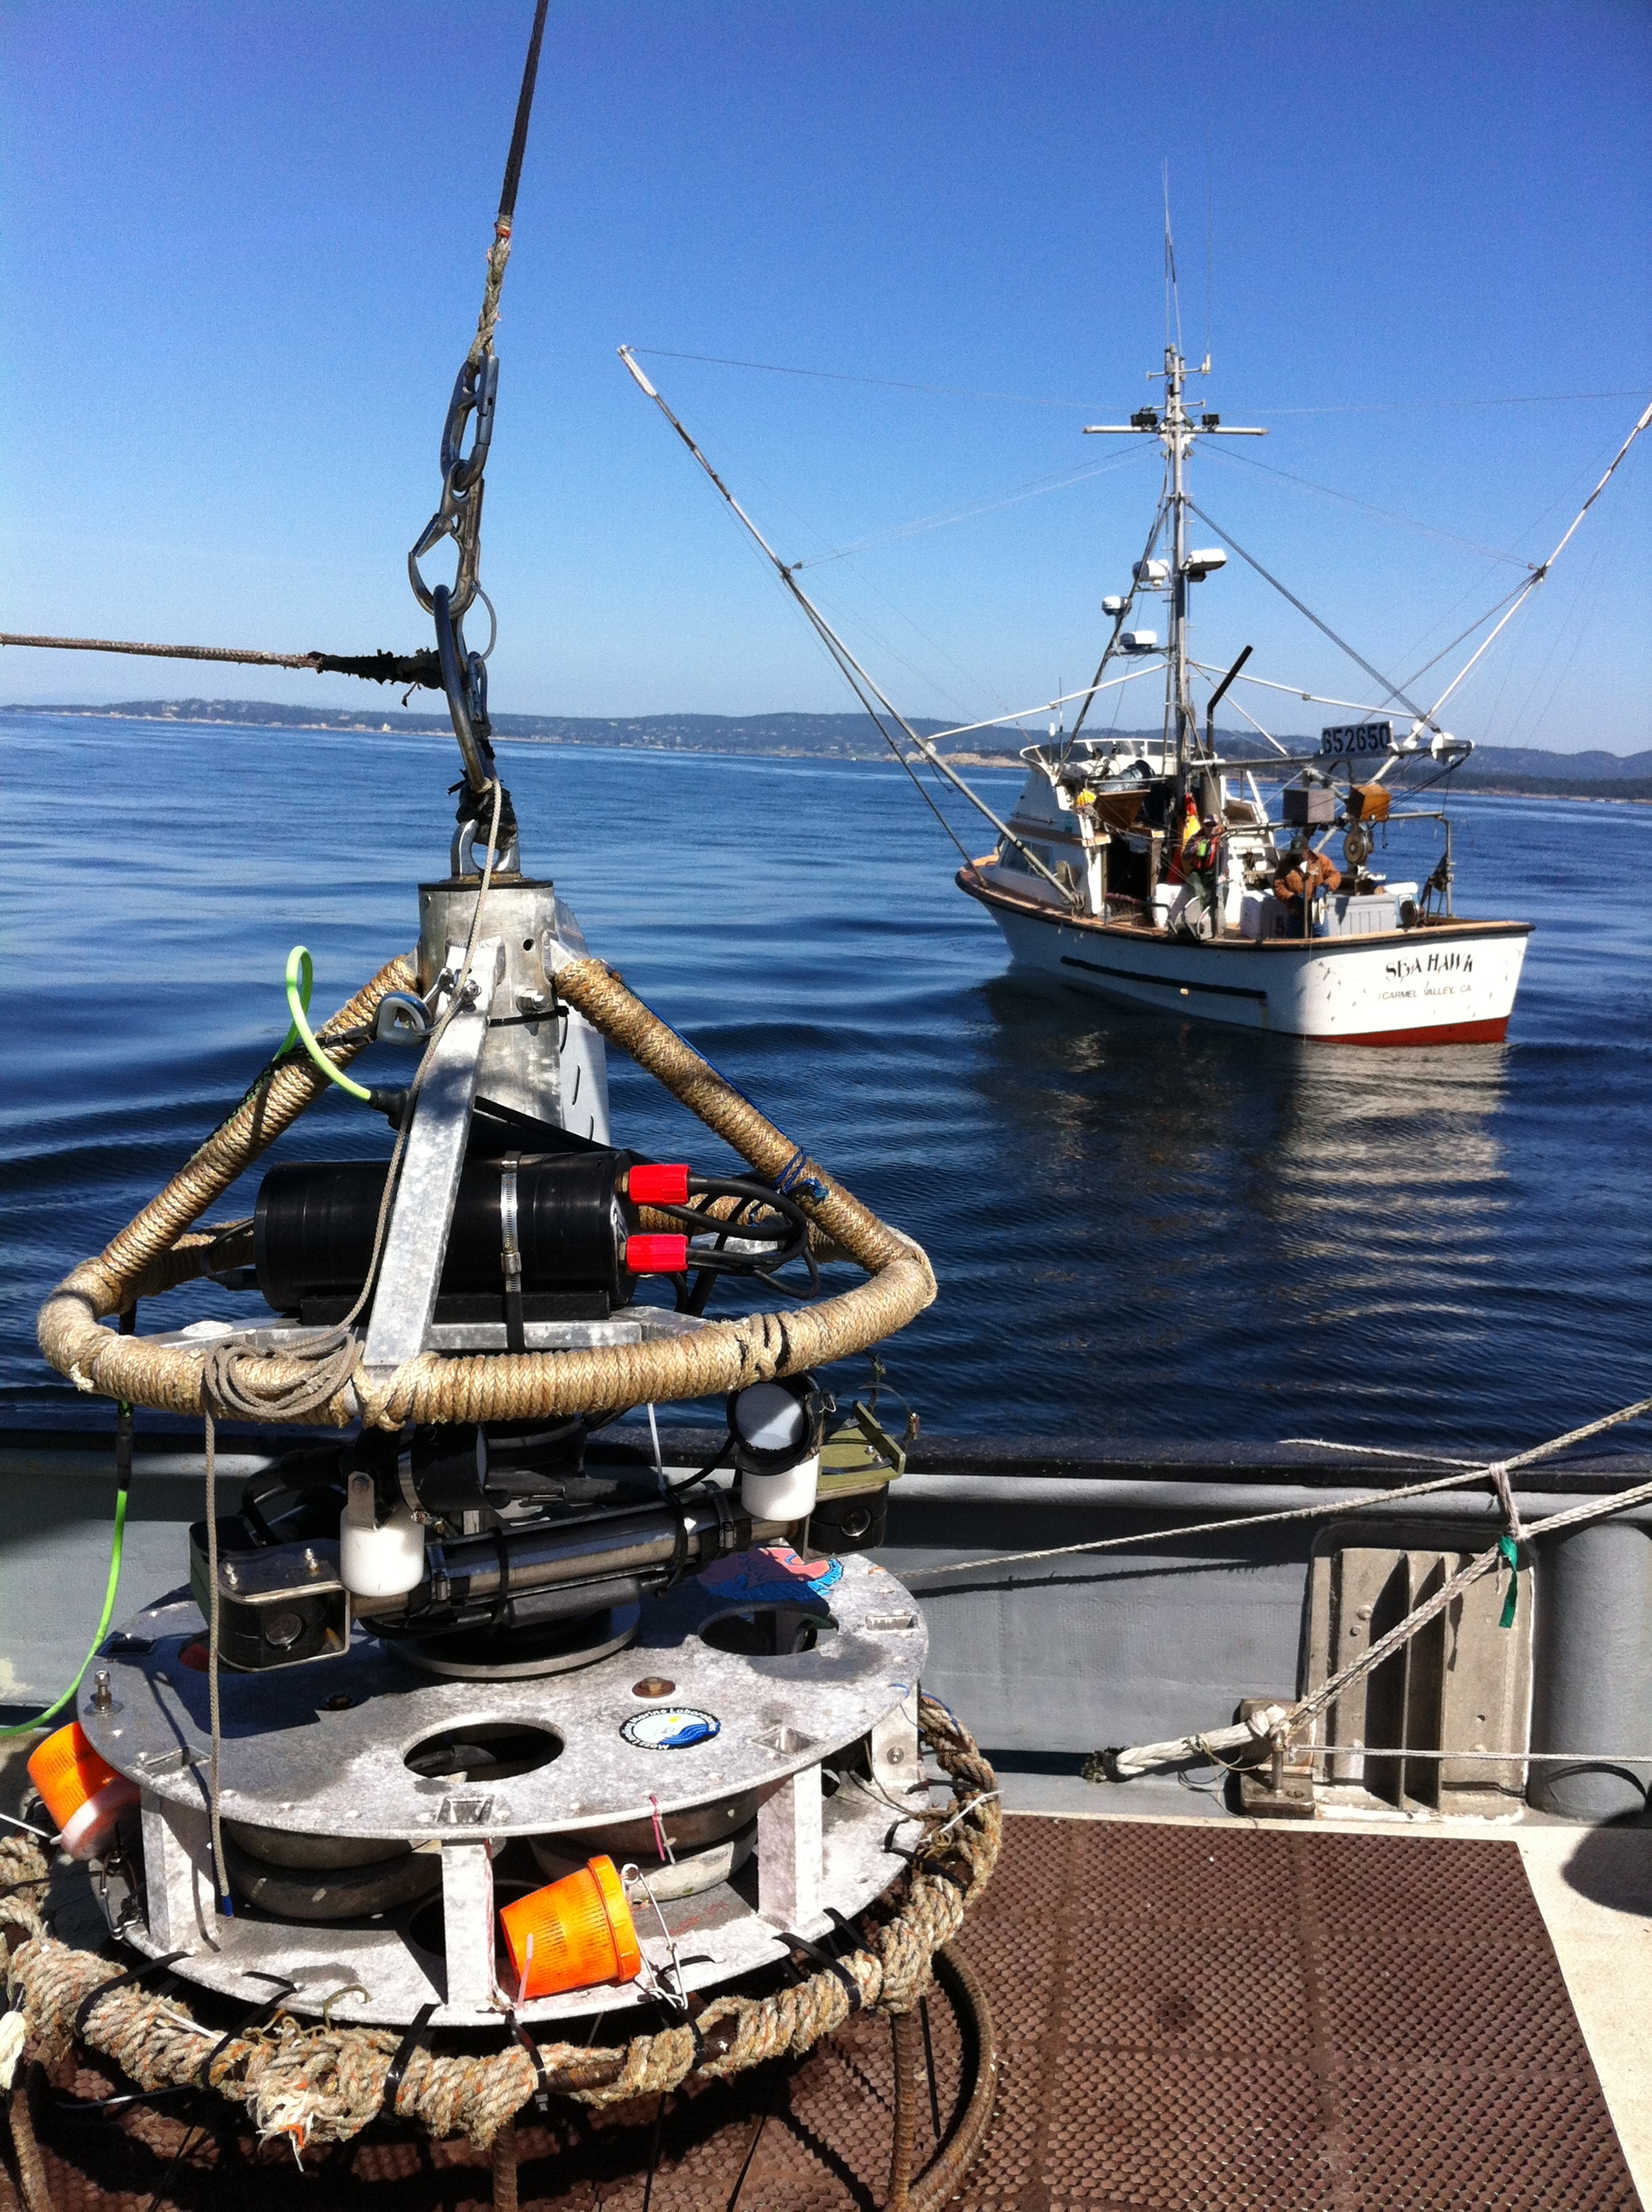 Video lander to be deployed off the F/V Donna Kathleen while F/V Sea Hawk fishes using standardized hook-and-line methods in adjacent waters